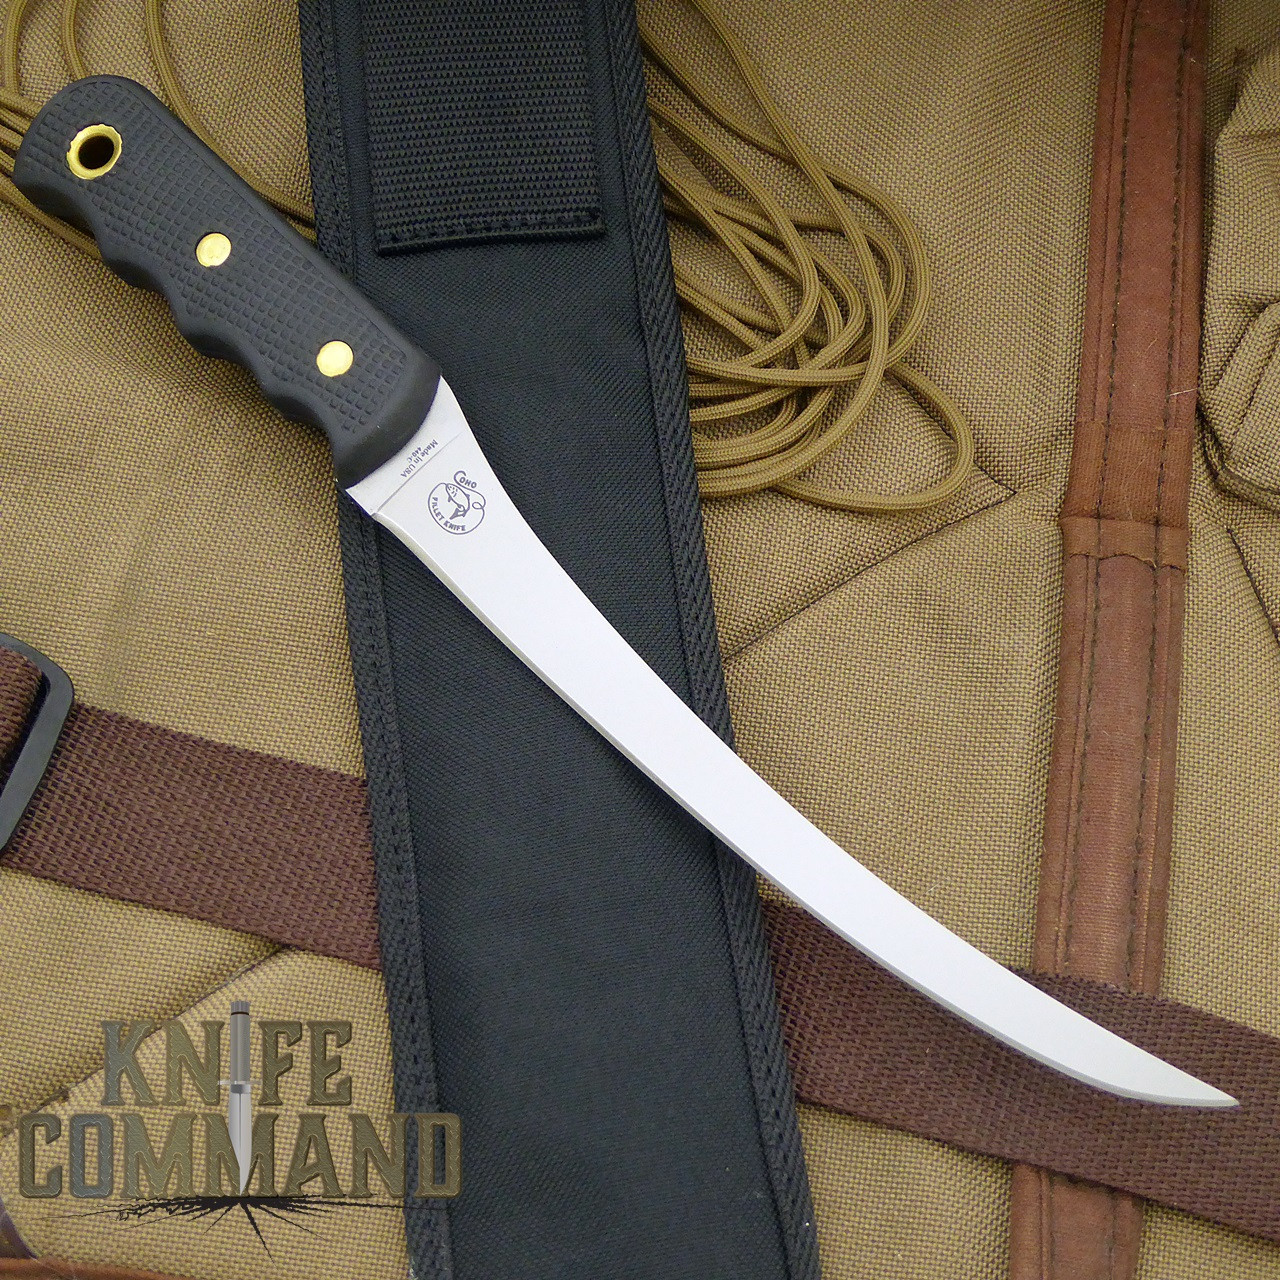 Knives of Alaska Coho Fillet Knife.  Nylon sheath with hard insert.